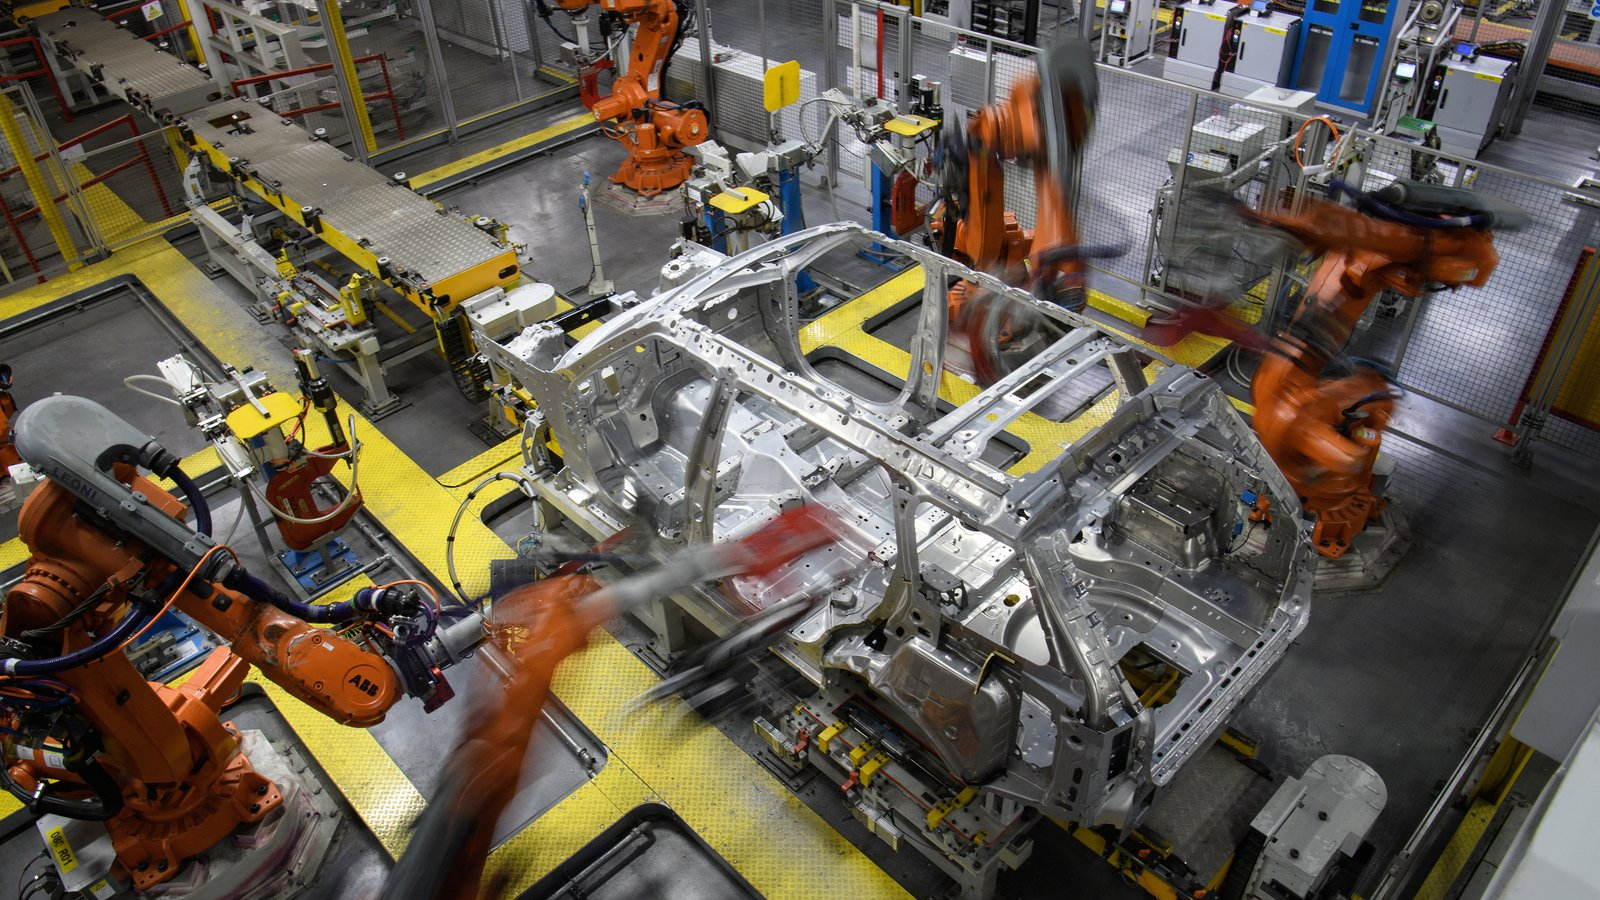 Making Climate Friendly Cars Material Considerations By Simone Wiring Harness Manufacturers In Uk Robotic Systems Work On The Chassis Of A Car During An Automated Stage Production At Jaguar Land Rover Factory Solihull England